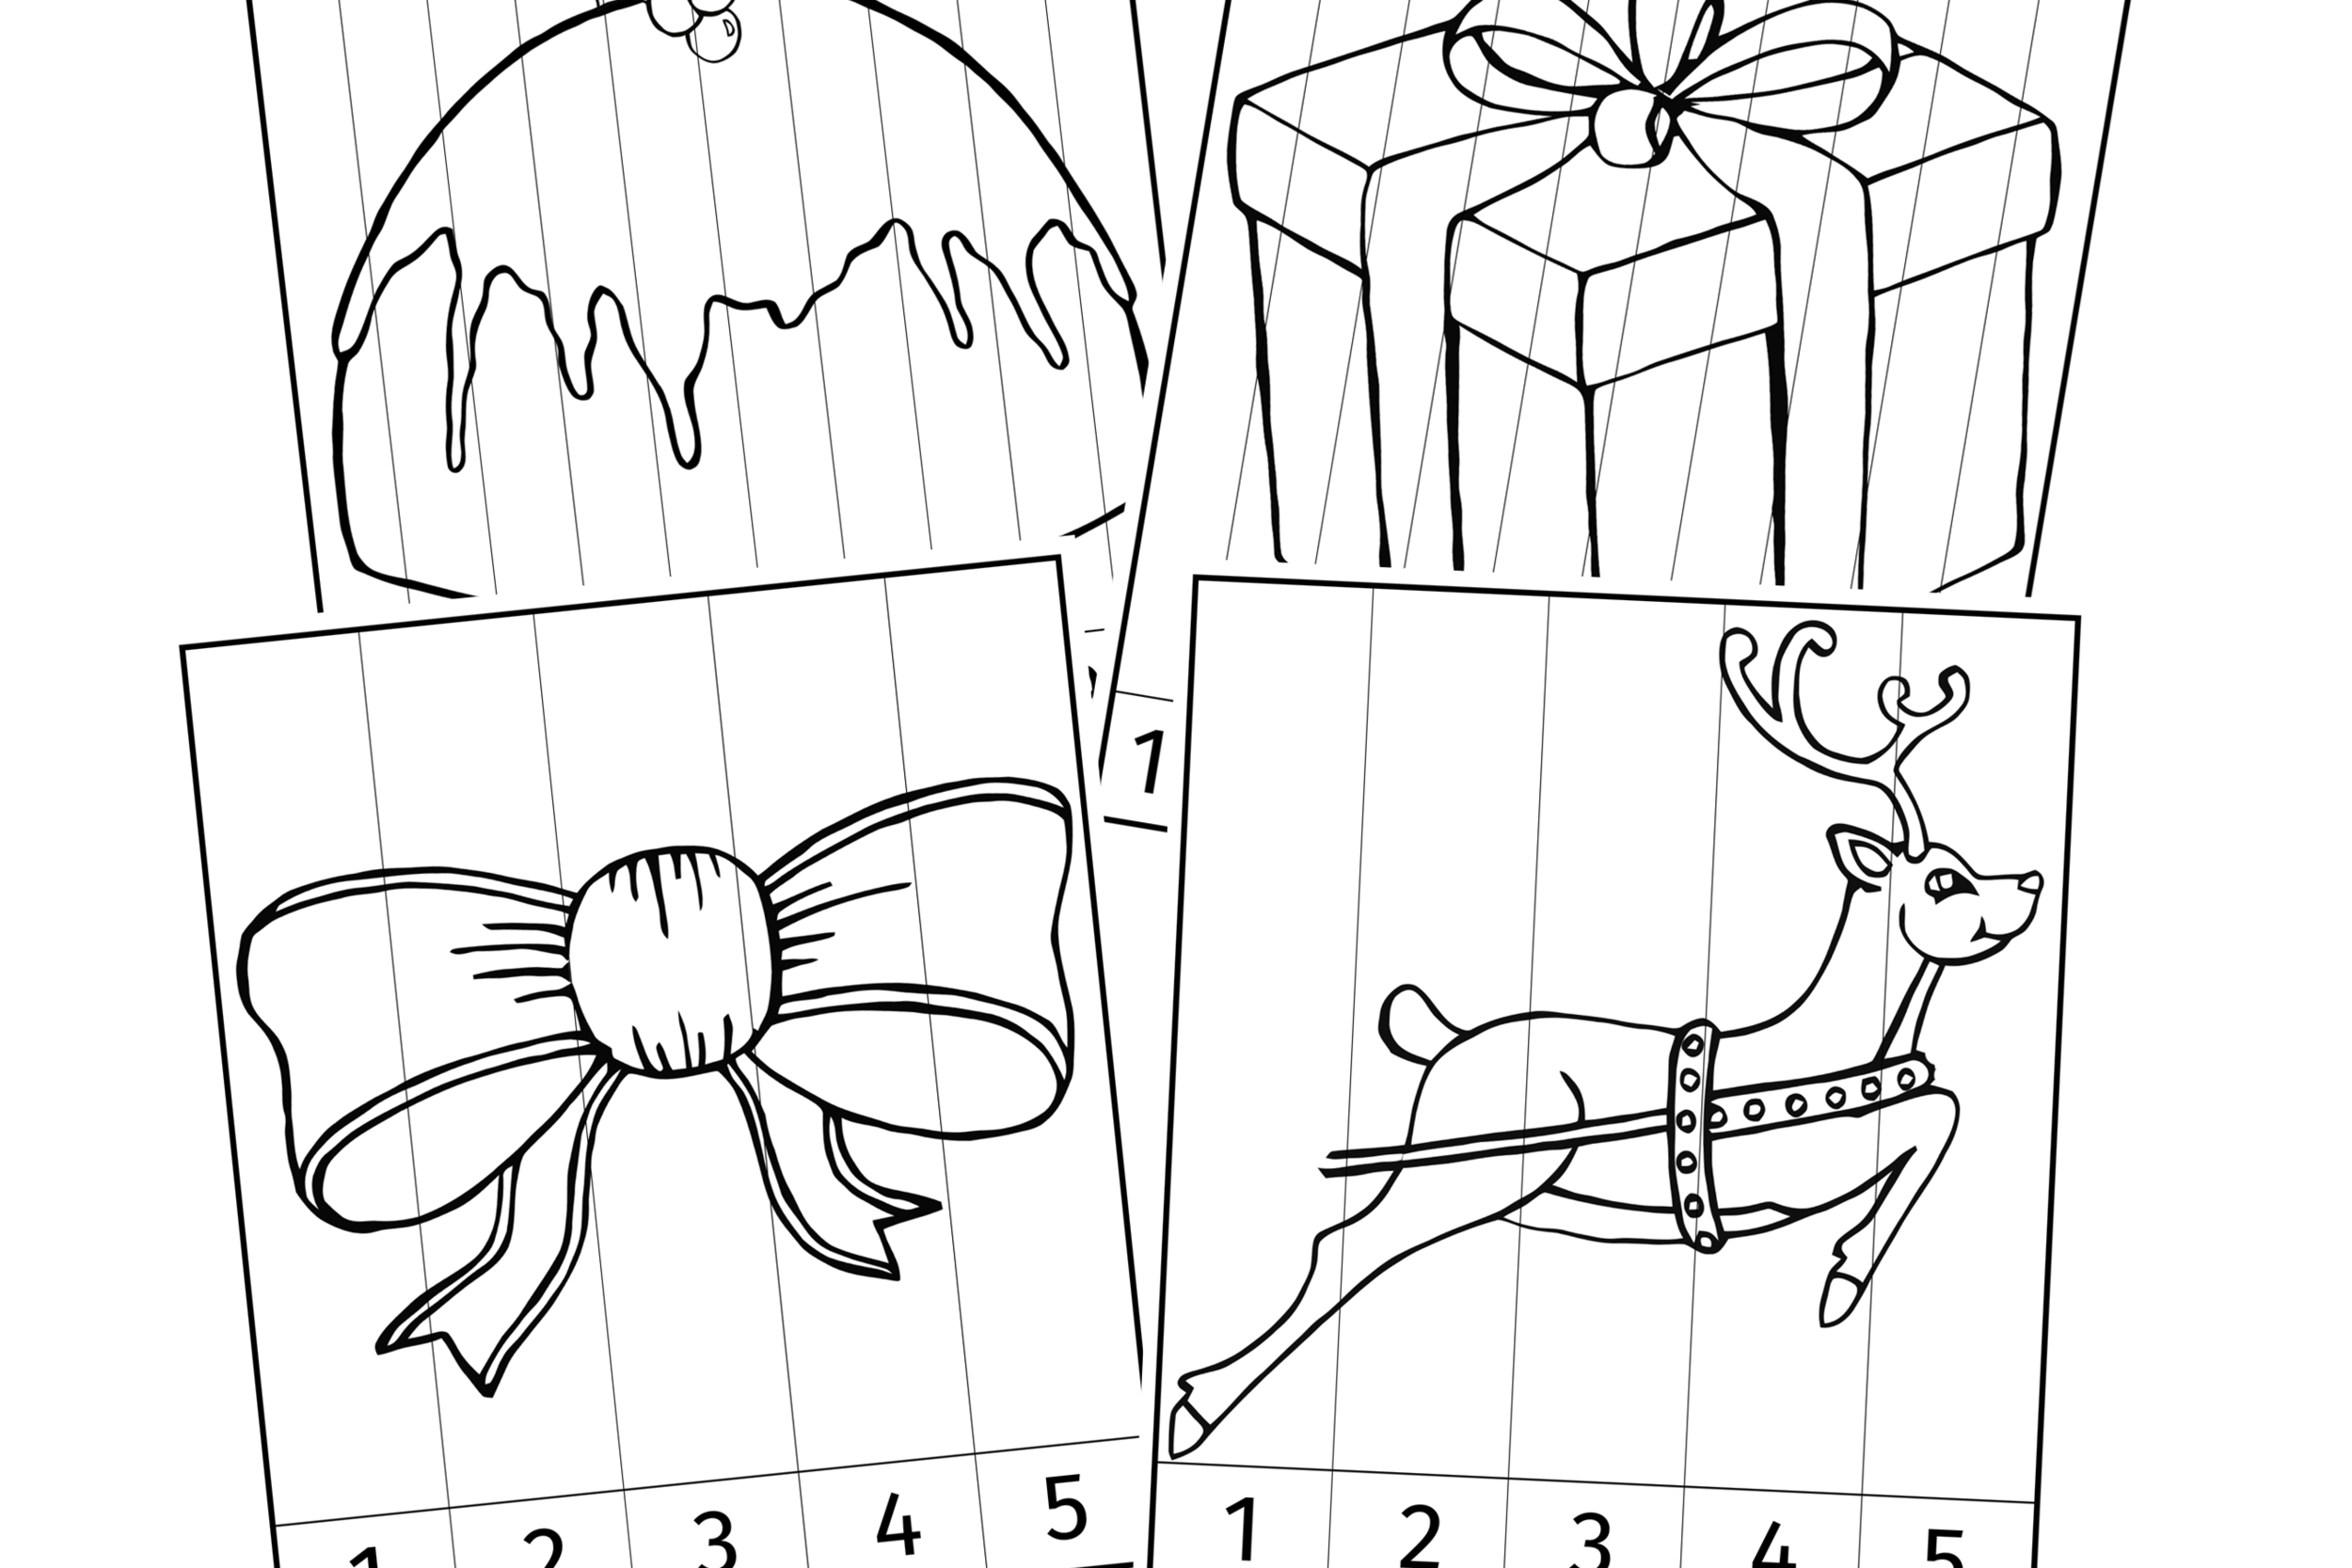 Christmas Number Slice Colouring Picture Puzzle Activities/Games